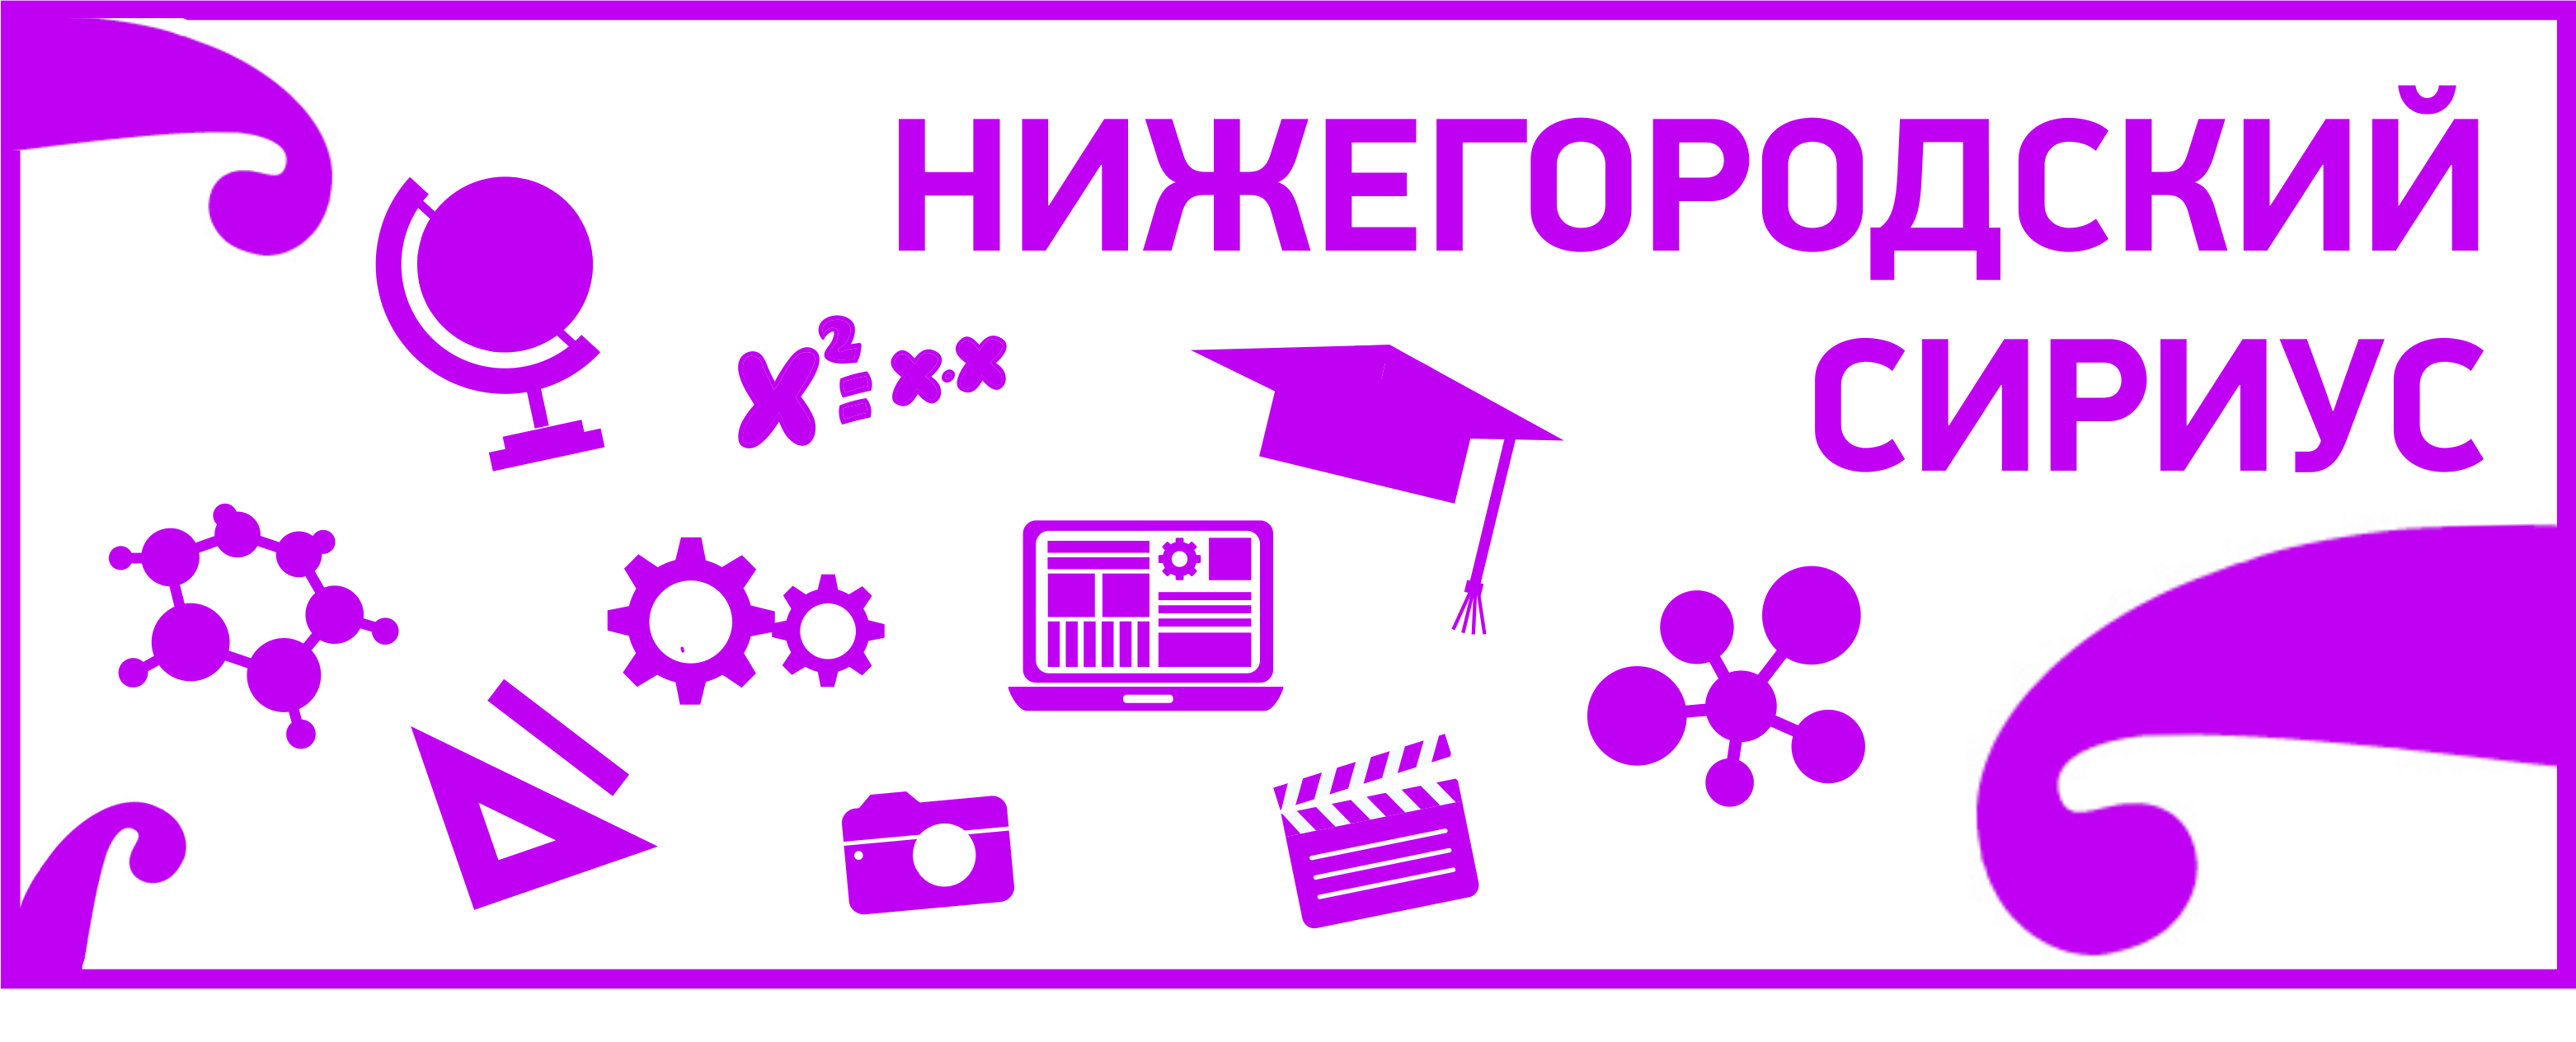 """Нижегородский Сириус"""